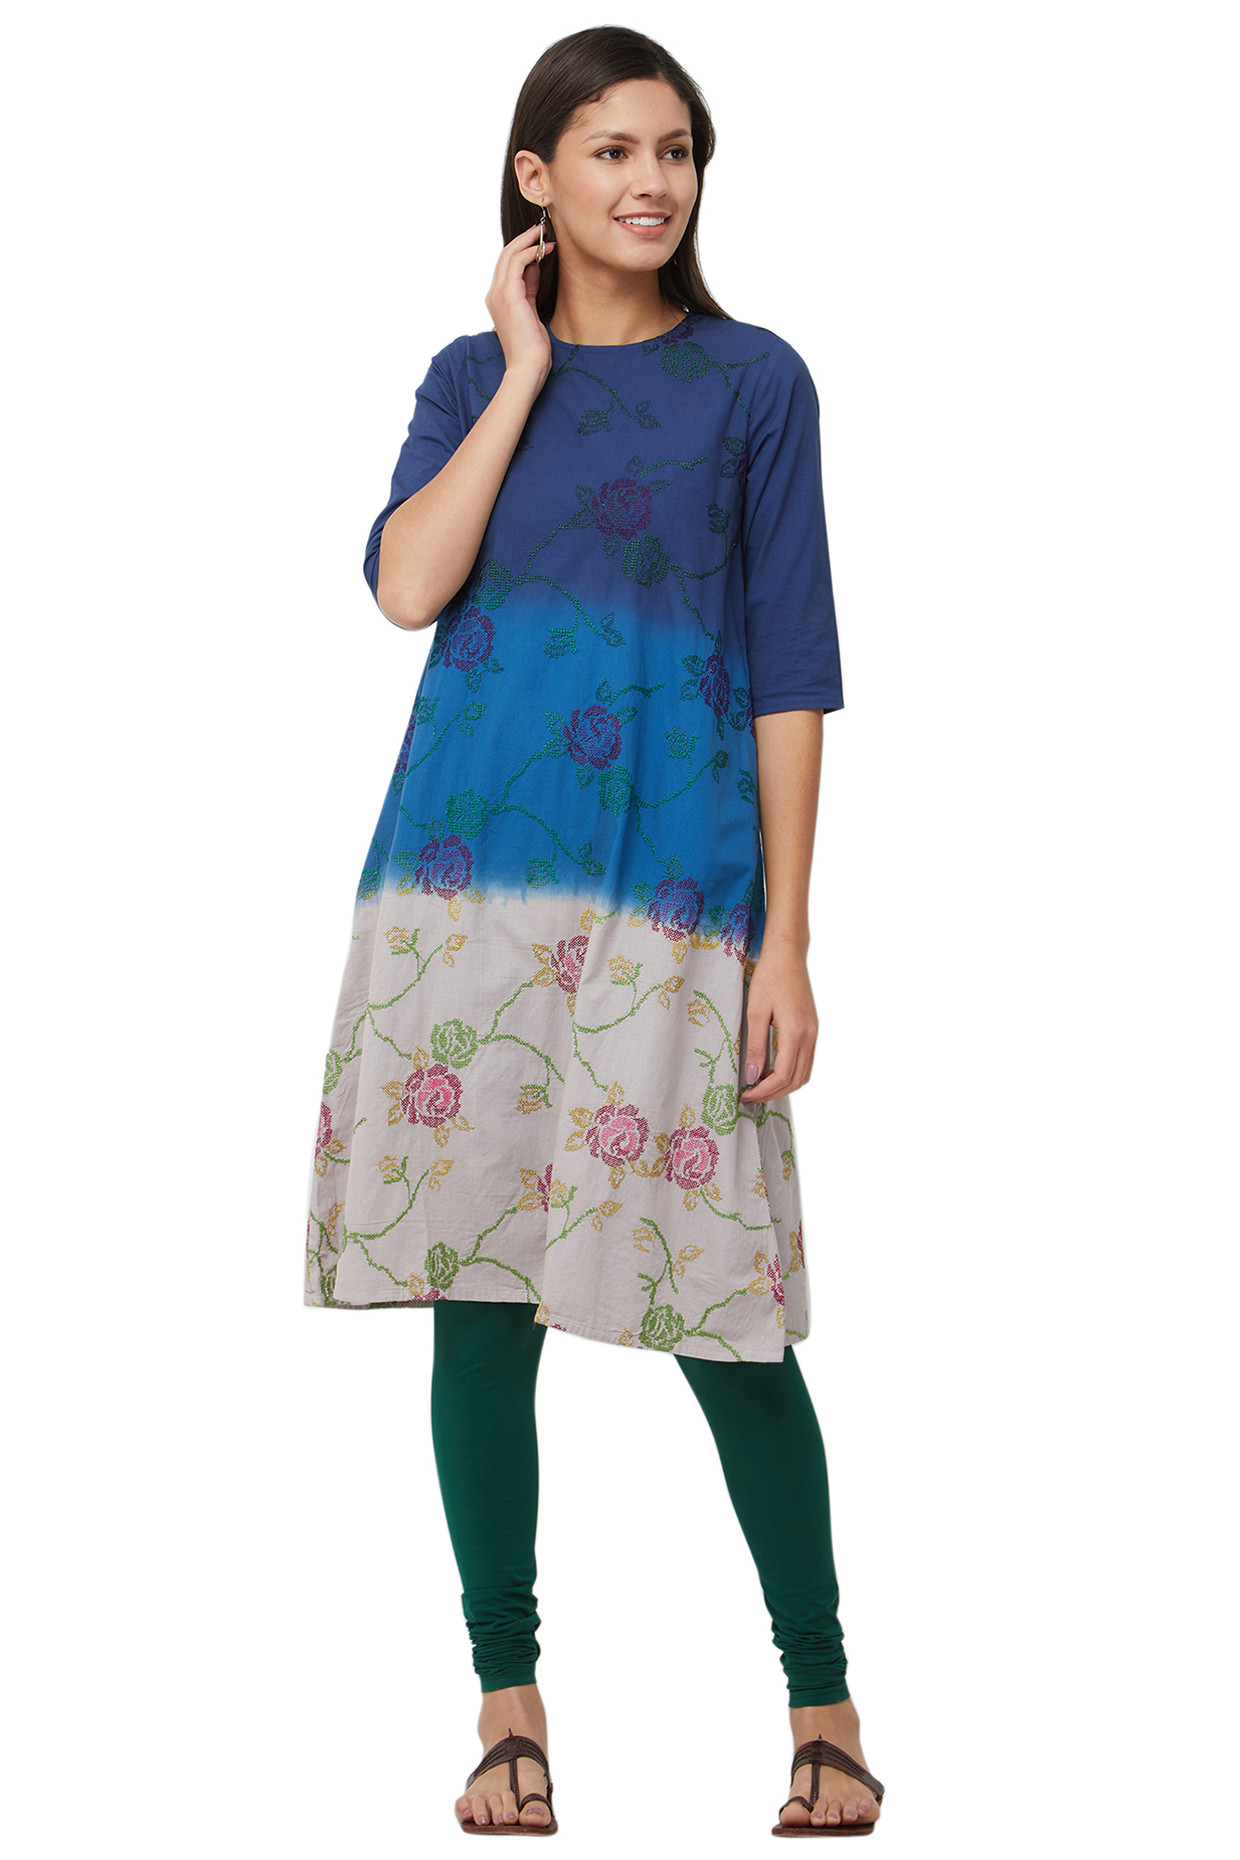 Sky Blue Tie Dyed Cotton Kurti In Pure Cotton by House Of Idar